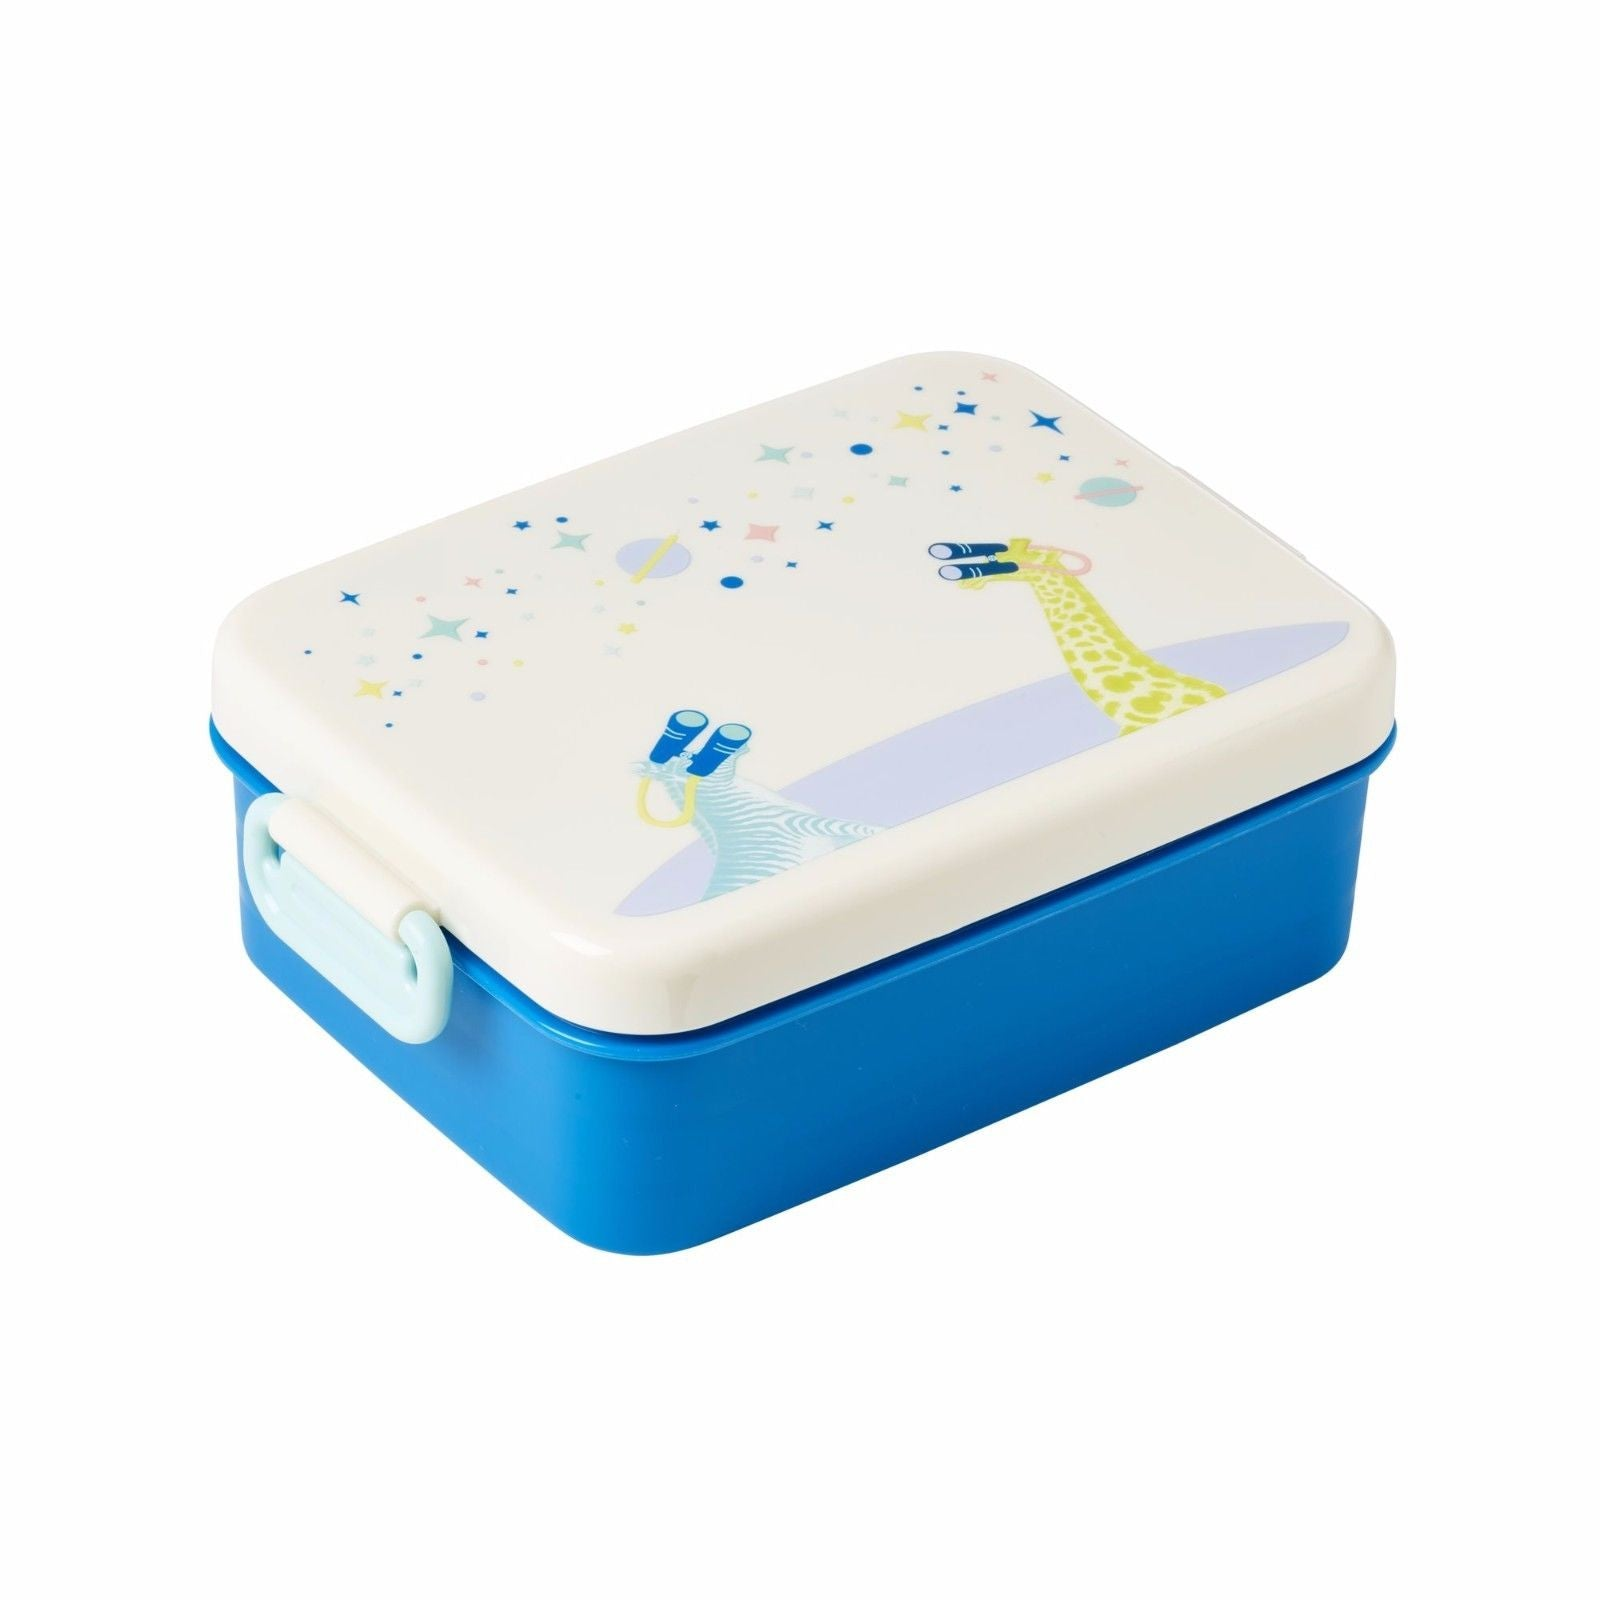 RICE DENMARK Large Lunchbox with Divider and Universe Print - Blue